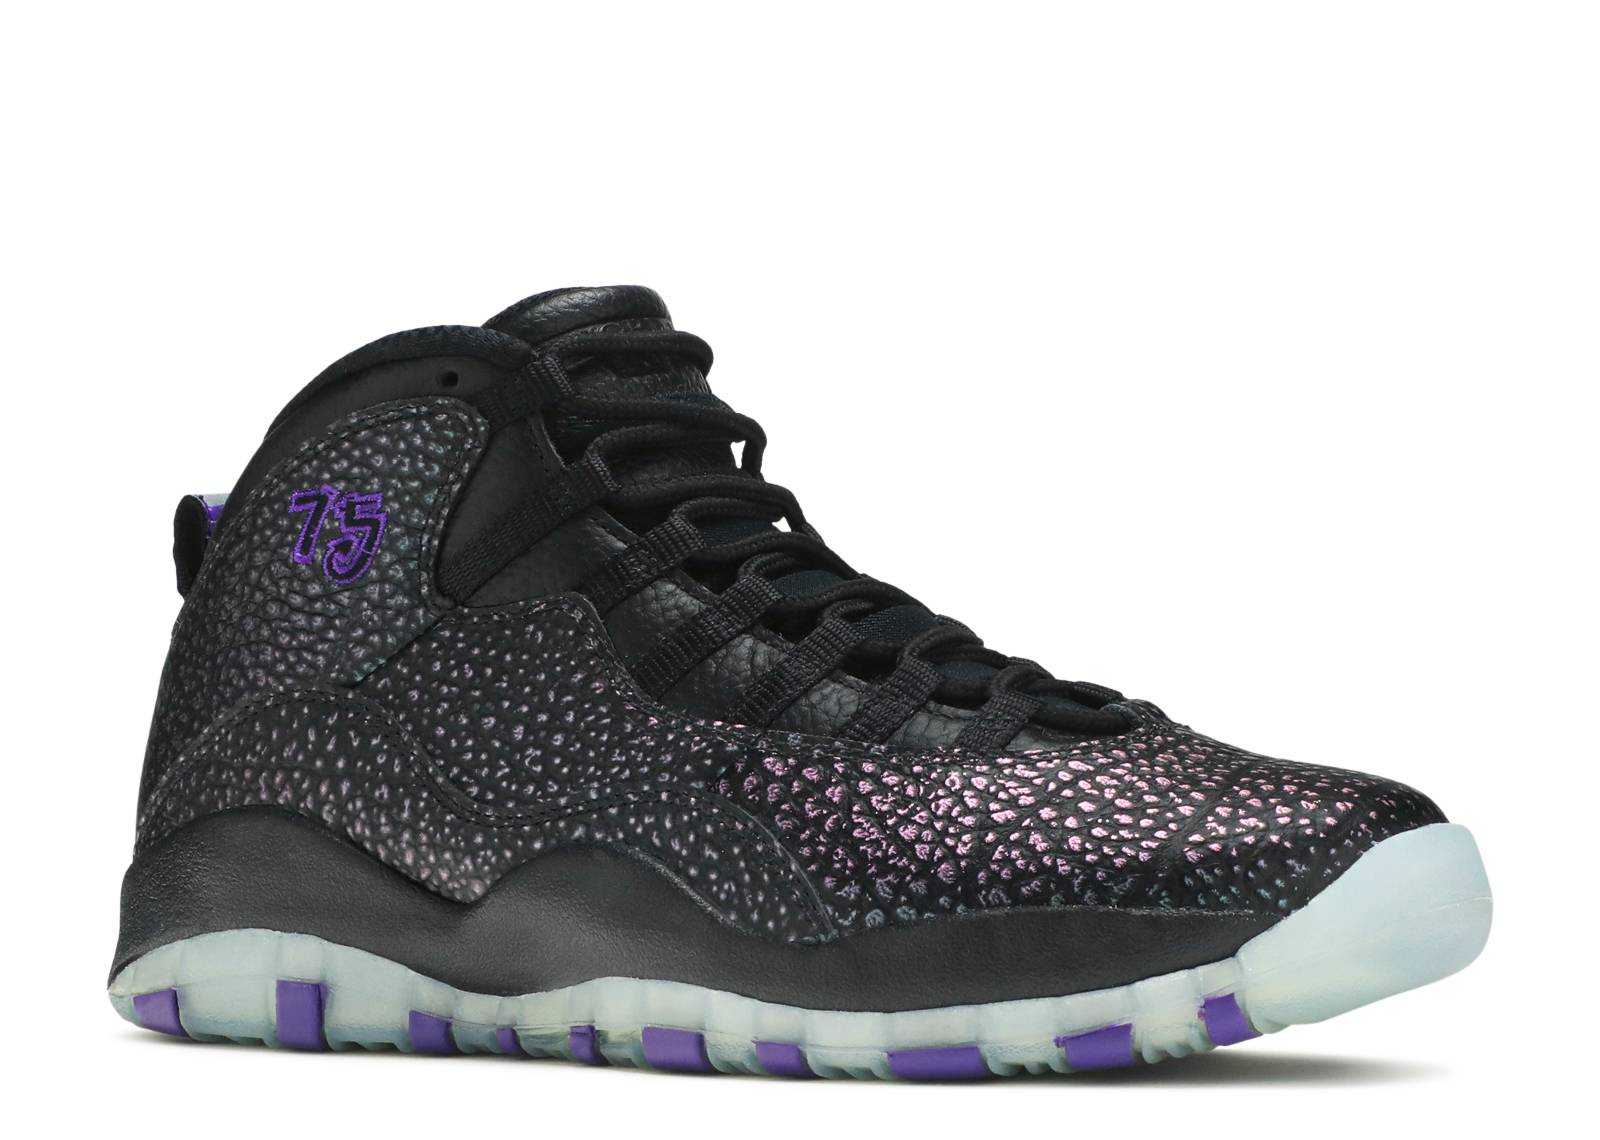 62e71bd5a12 Air Jordan Retro 10